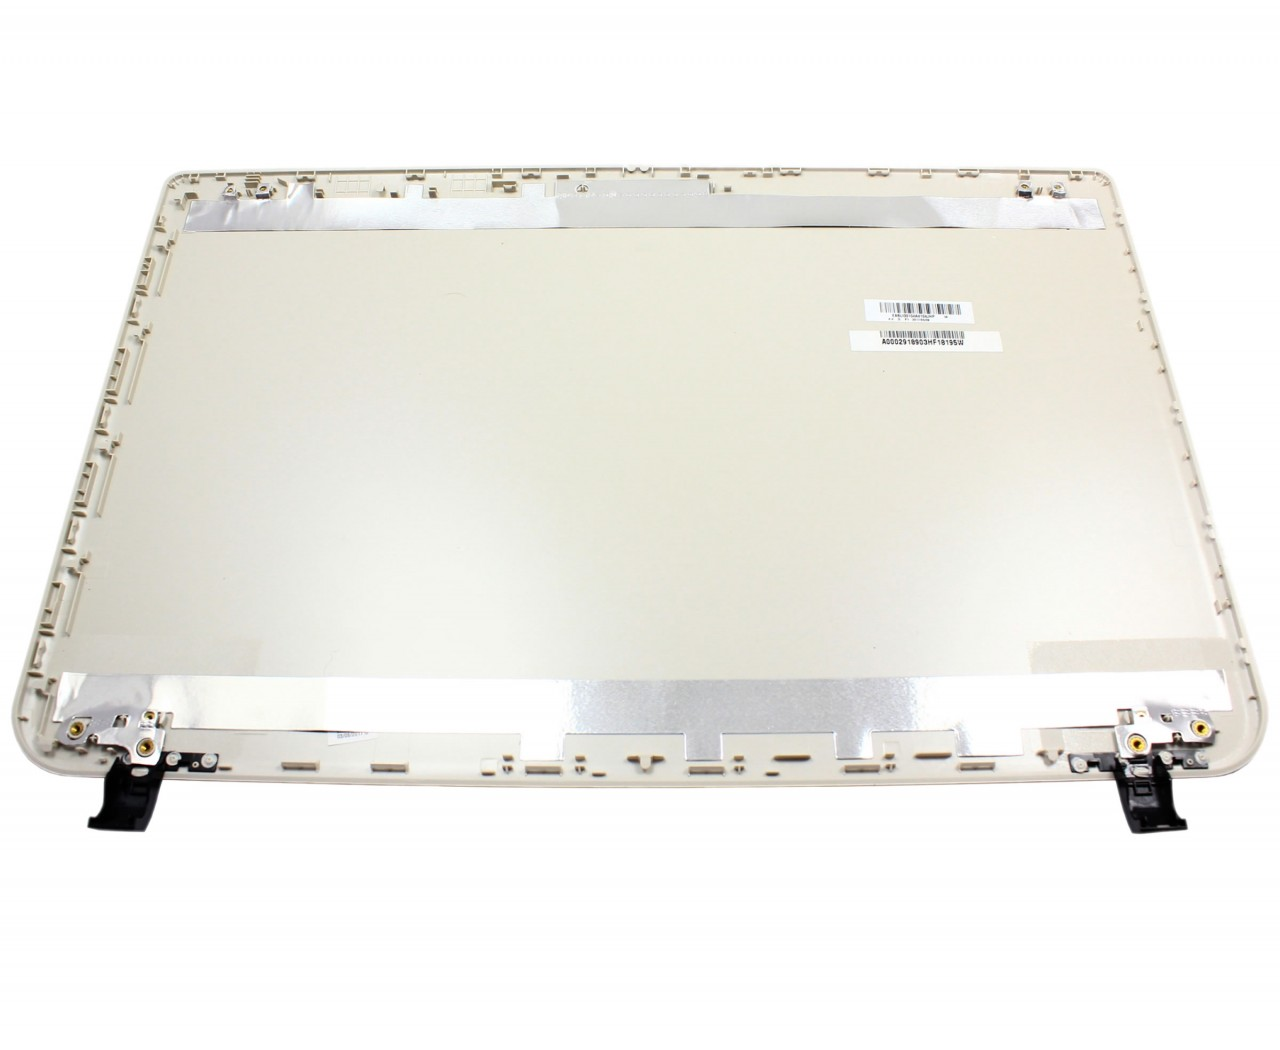 Capac Display BackCover Toshiba Satellite L50D B Carcasa Display Argintie imagine powerlaptop.ro 2021